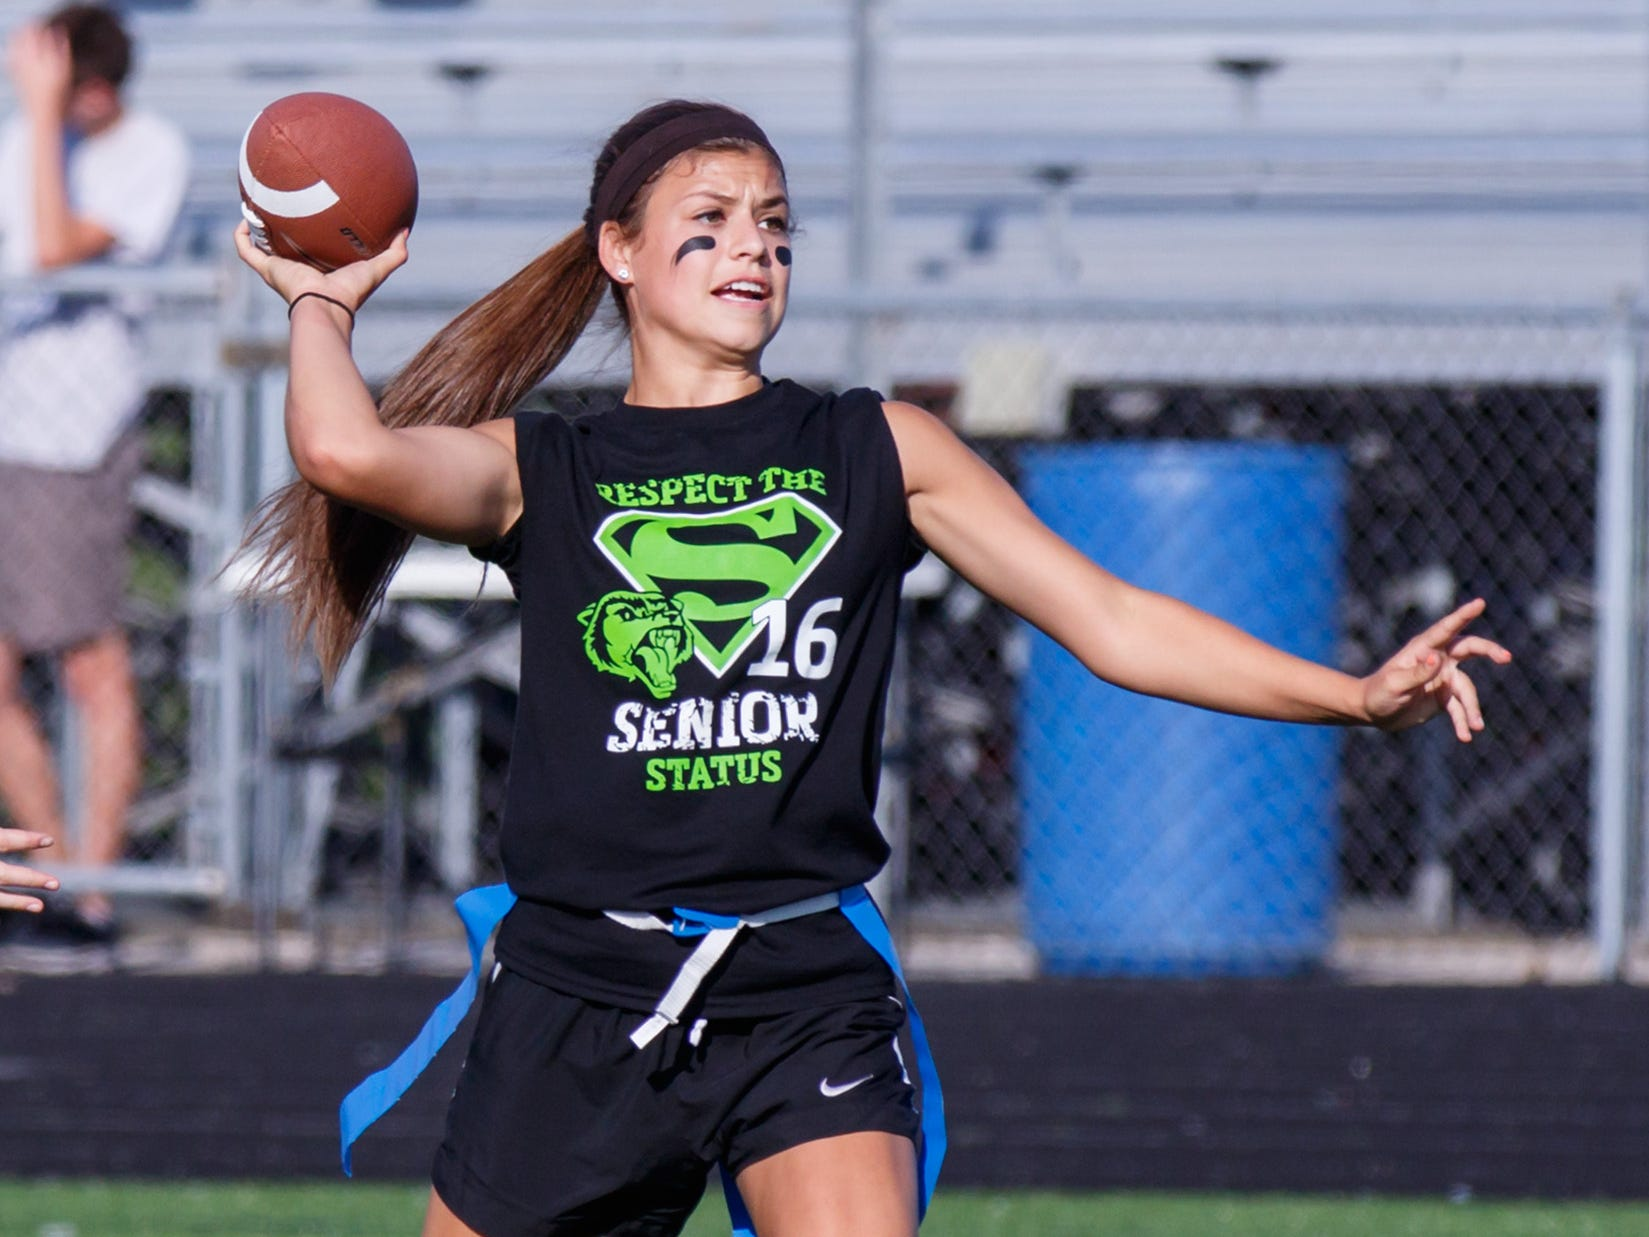 Waukesha West senior Dani Rhodes gets set to throw a pass during the powderpuff football game against the juniors on Sept. 23, 2015, at the high school. The seniors defeated the juniors 22-6 in the championship game.